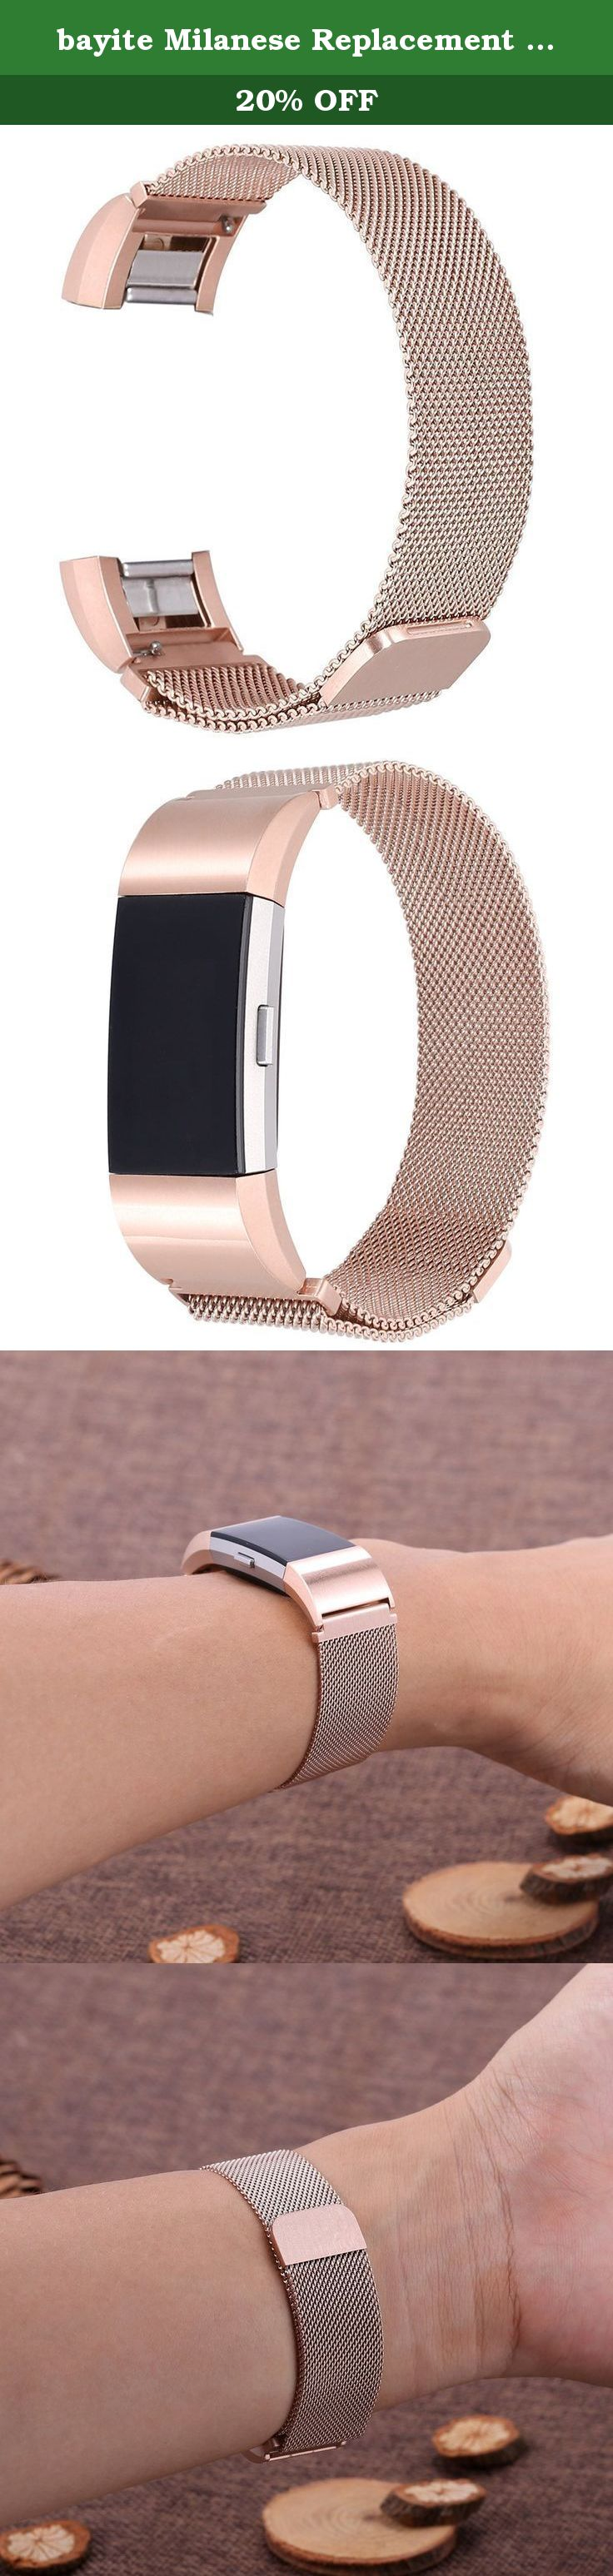 Bayite milanese replacement bands for fitbit charge rose gold